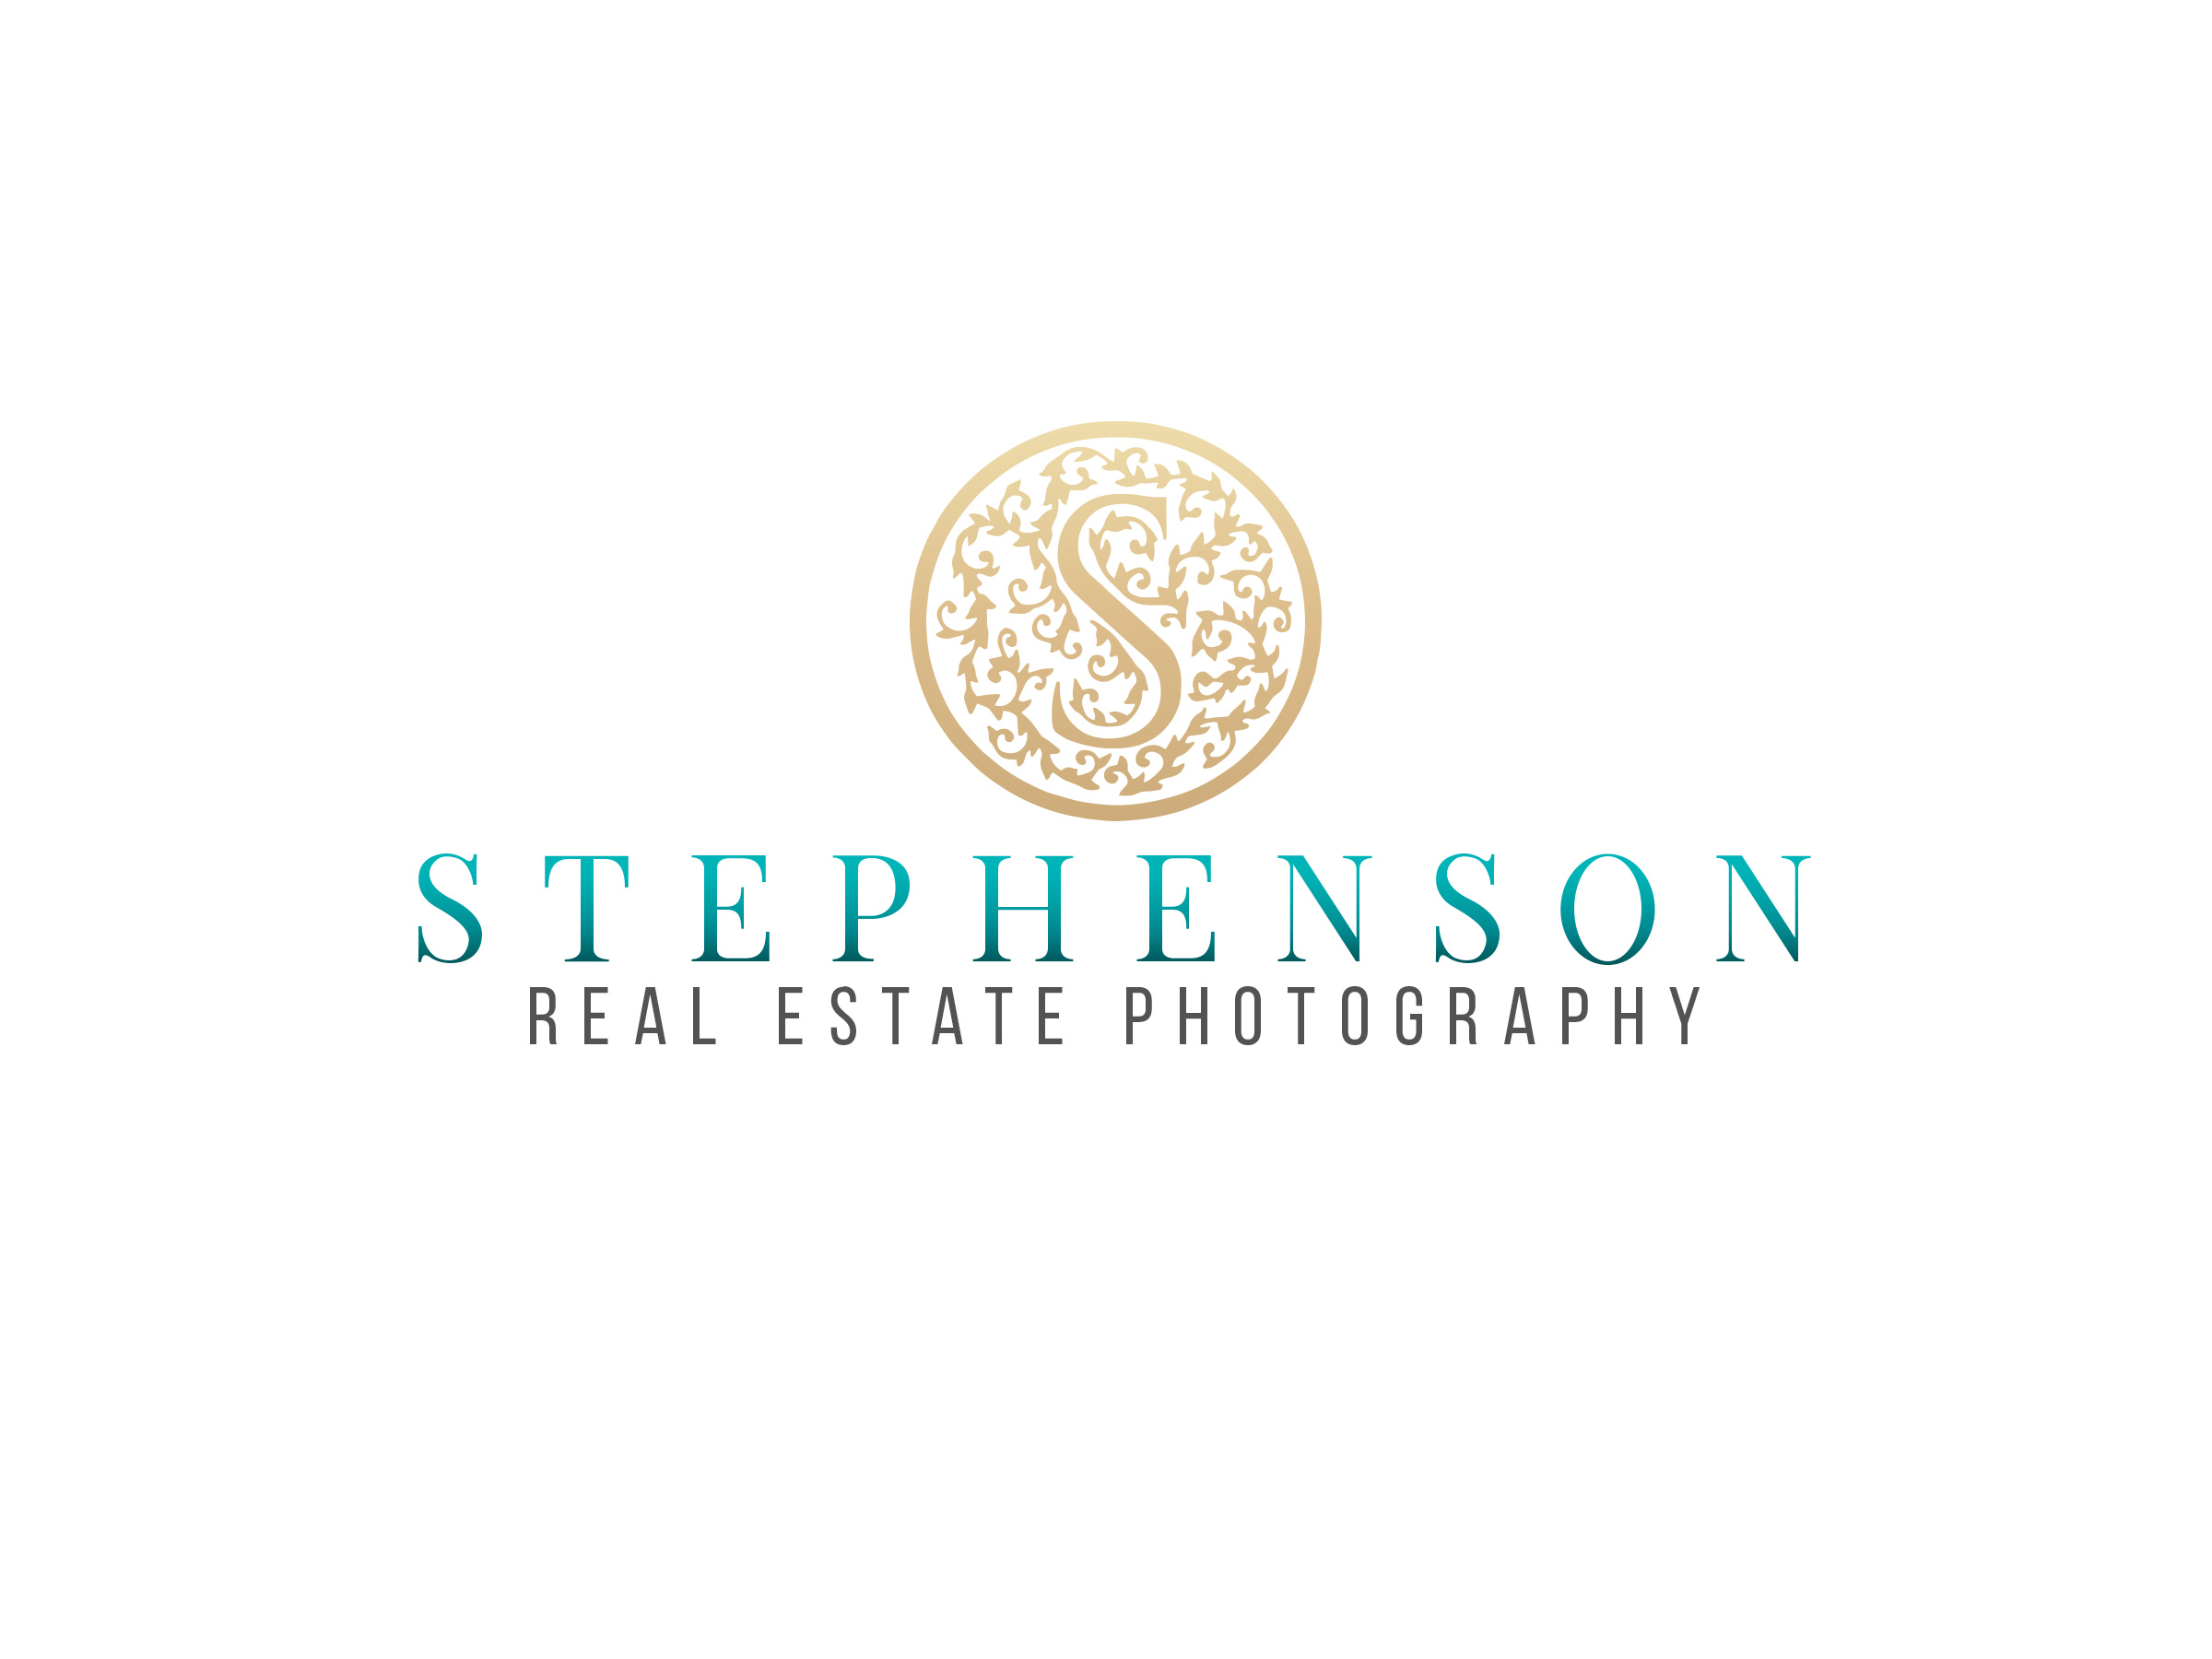 Stephenson Real Estate Photography floor plan in New Orleans